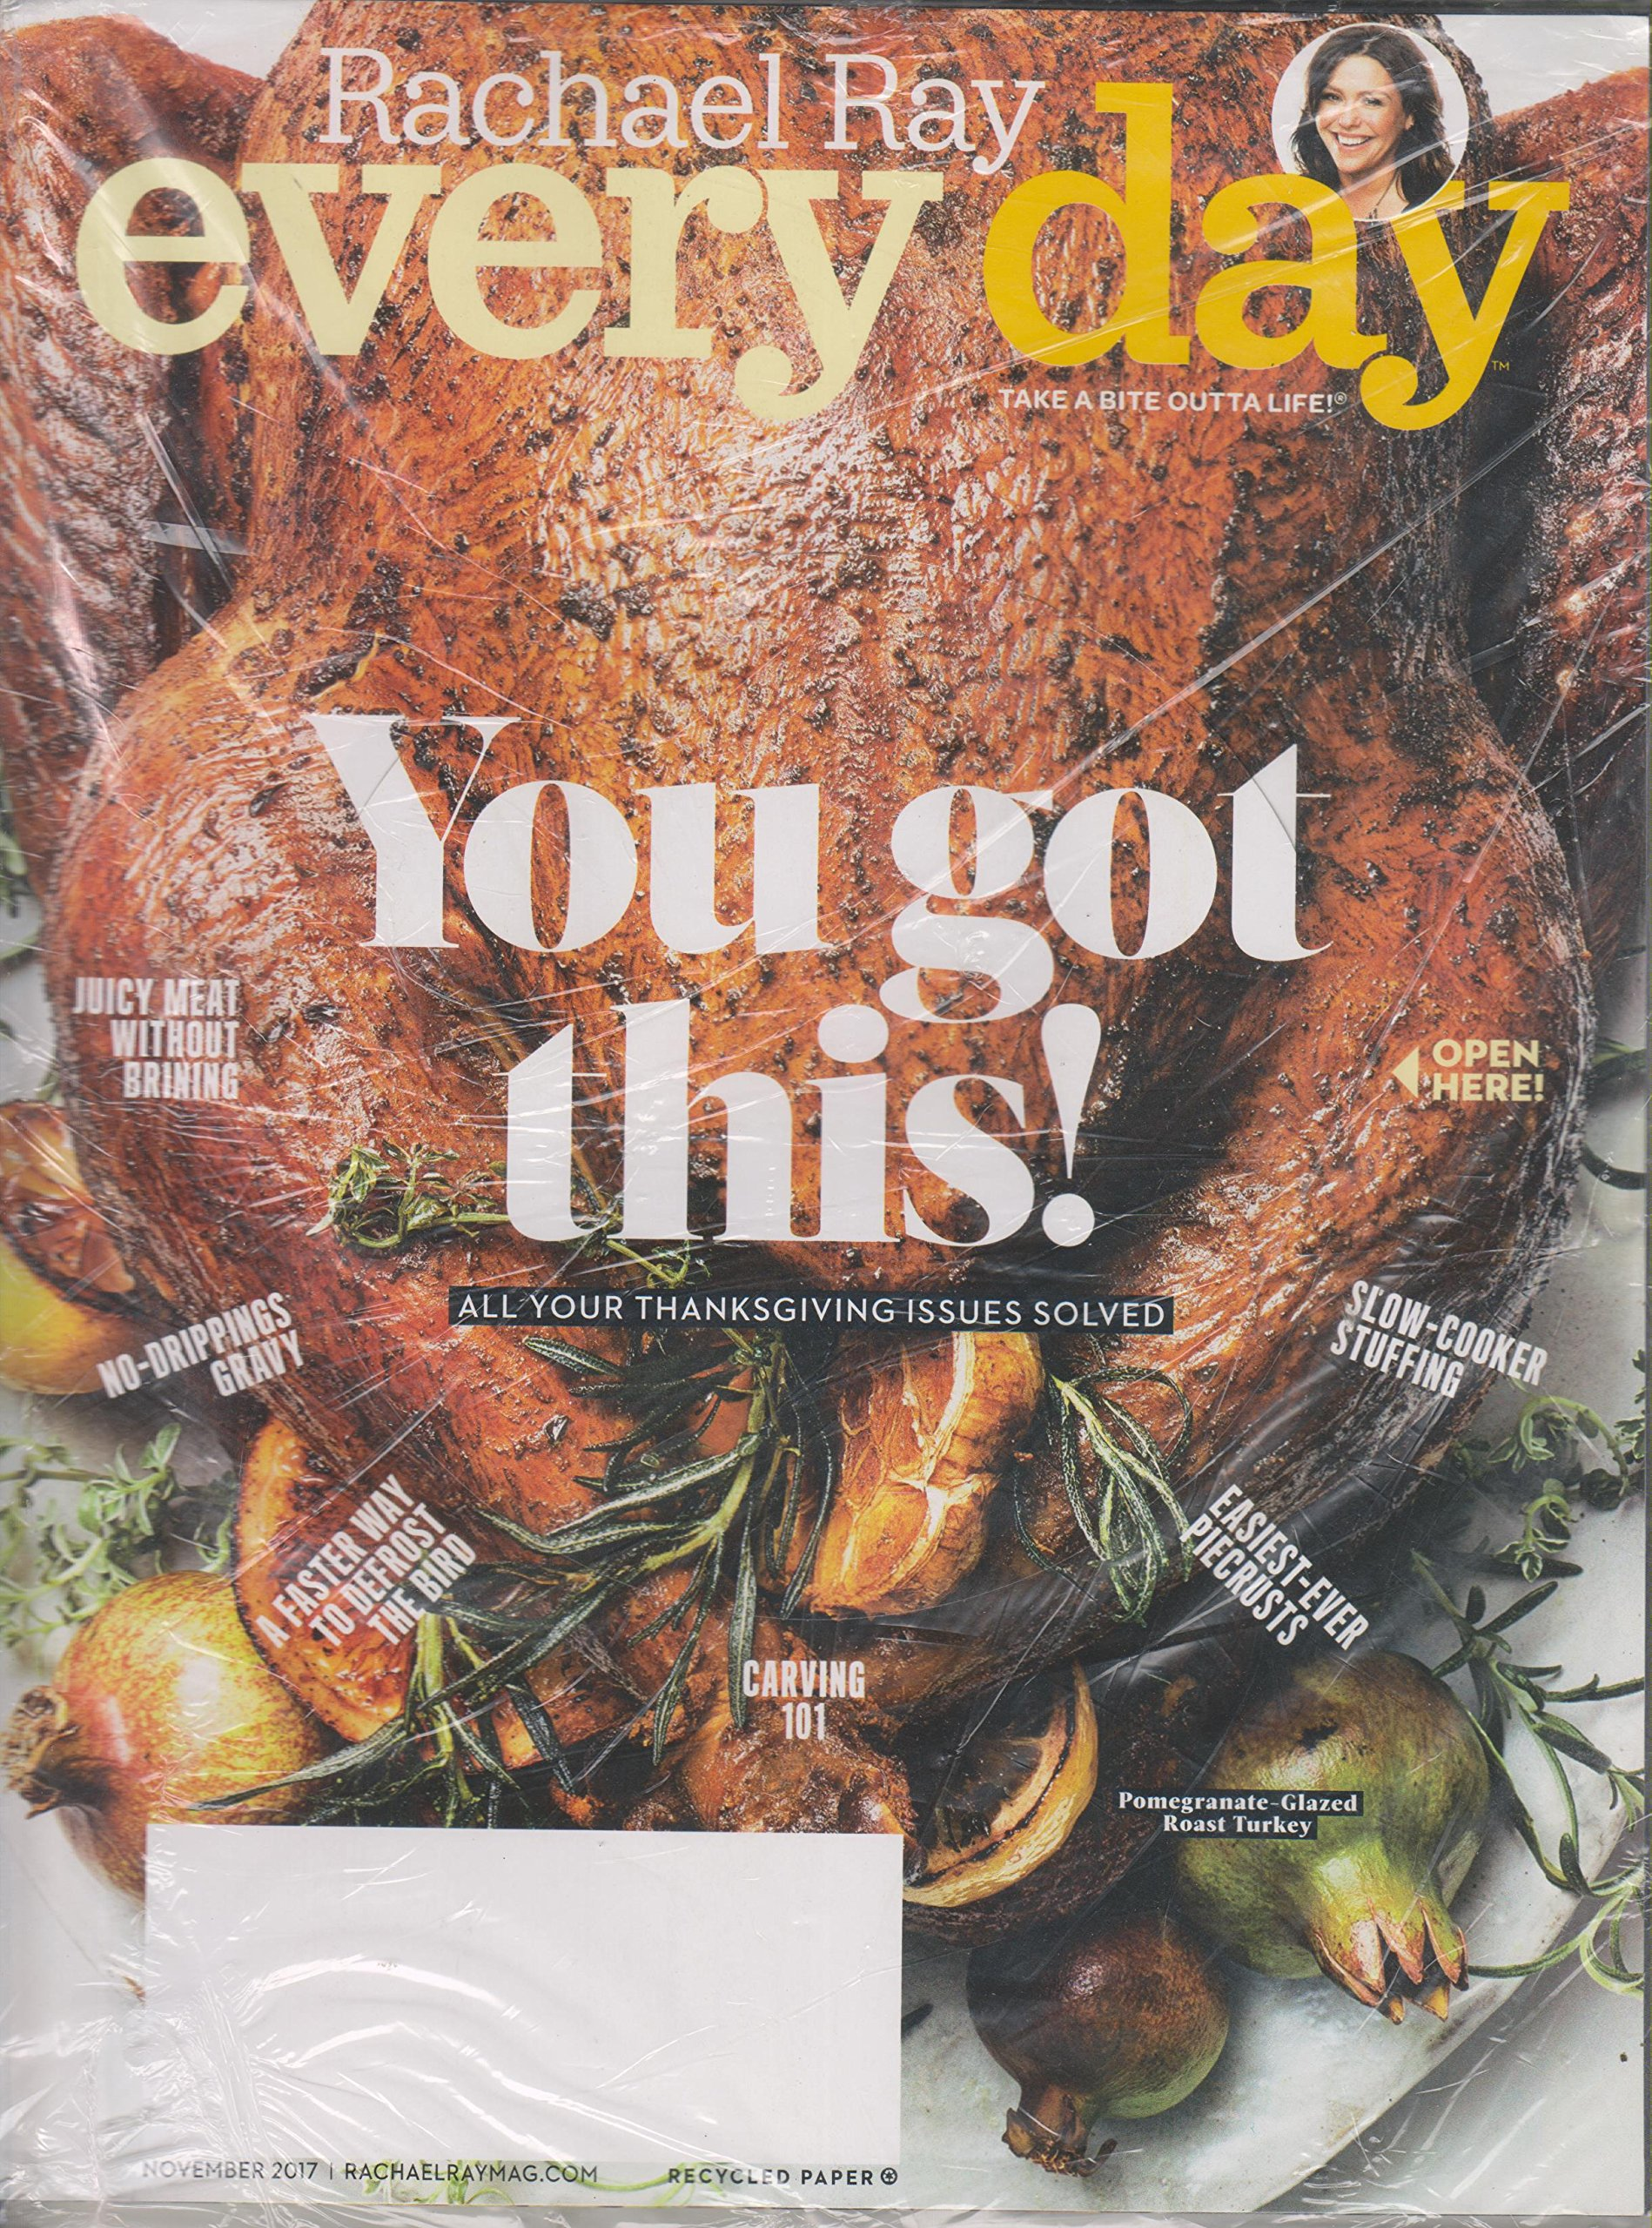 Download Rachael Ray Every Day November 2017 You Got This! All Your Thanksgiving Issues Solved. pdf epub